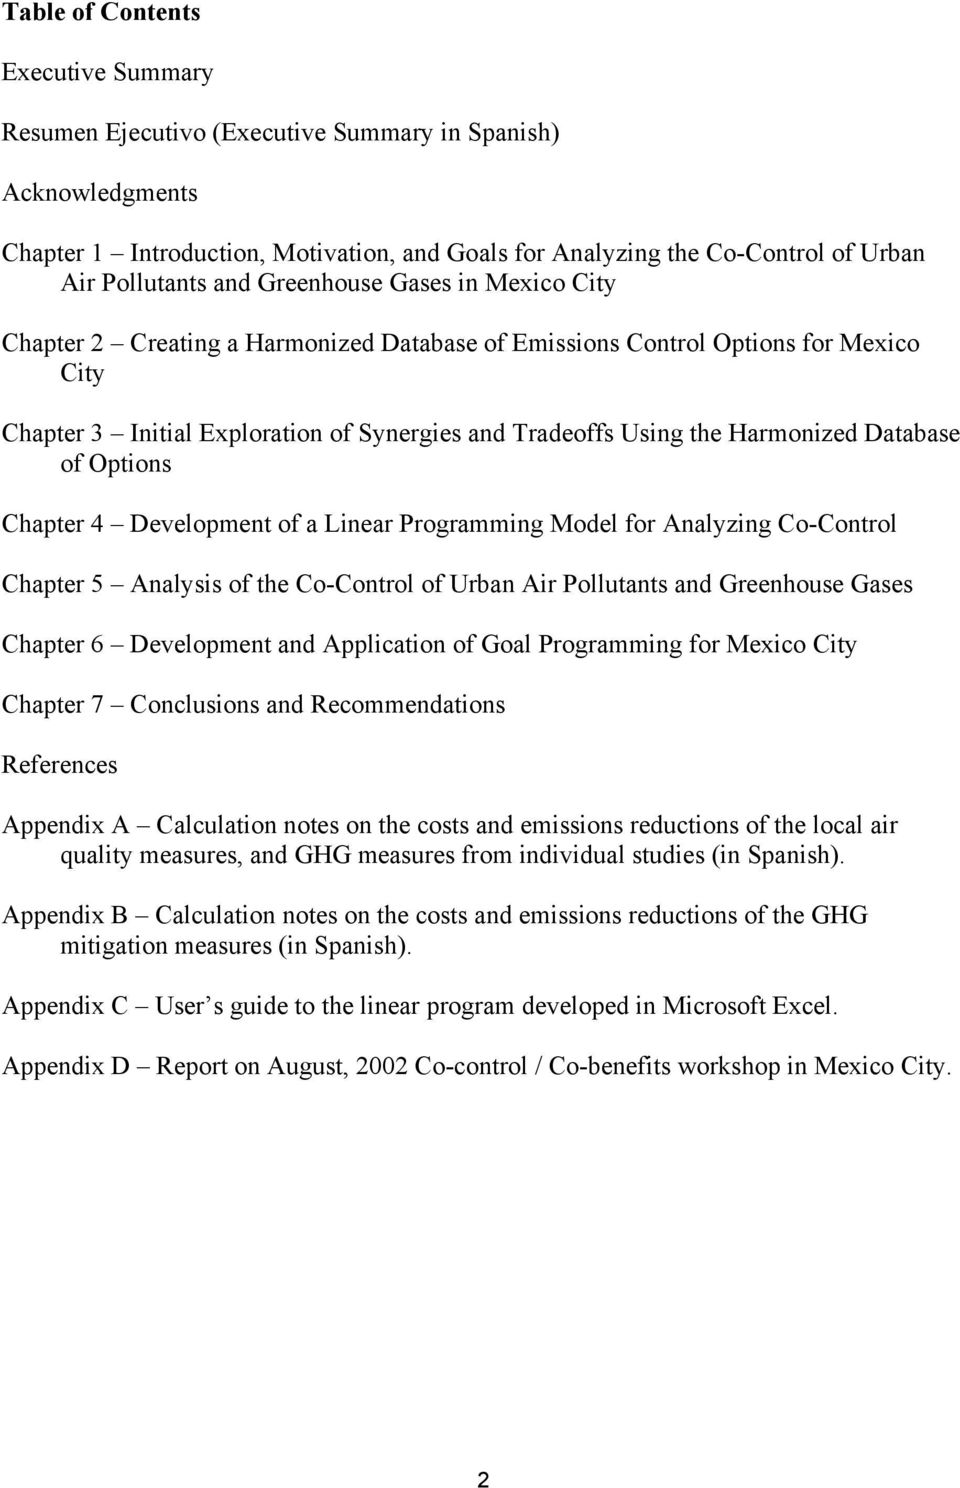 Database of Options Chapter 4 Development of a Linear Programming Model for Analyzing Co-Control Chapter 5 Analysis of the Co-Control of Urban Air Pollutants and Greenhouse Gases Chapter 6